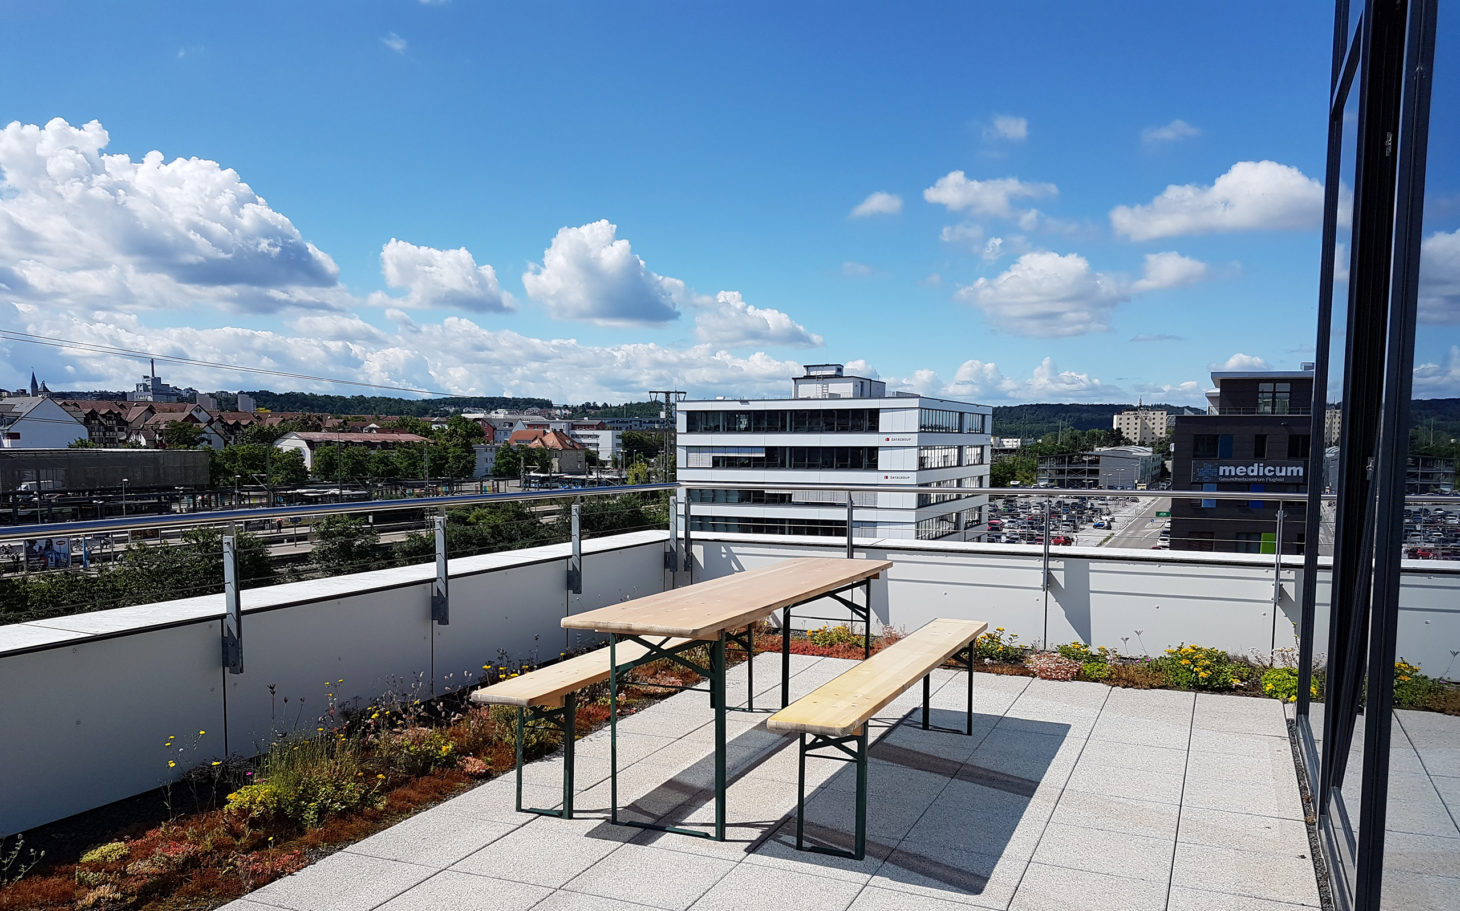 valantic Supply Chain Excellence office in Böblingen, image of the roof terrace